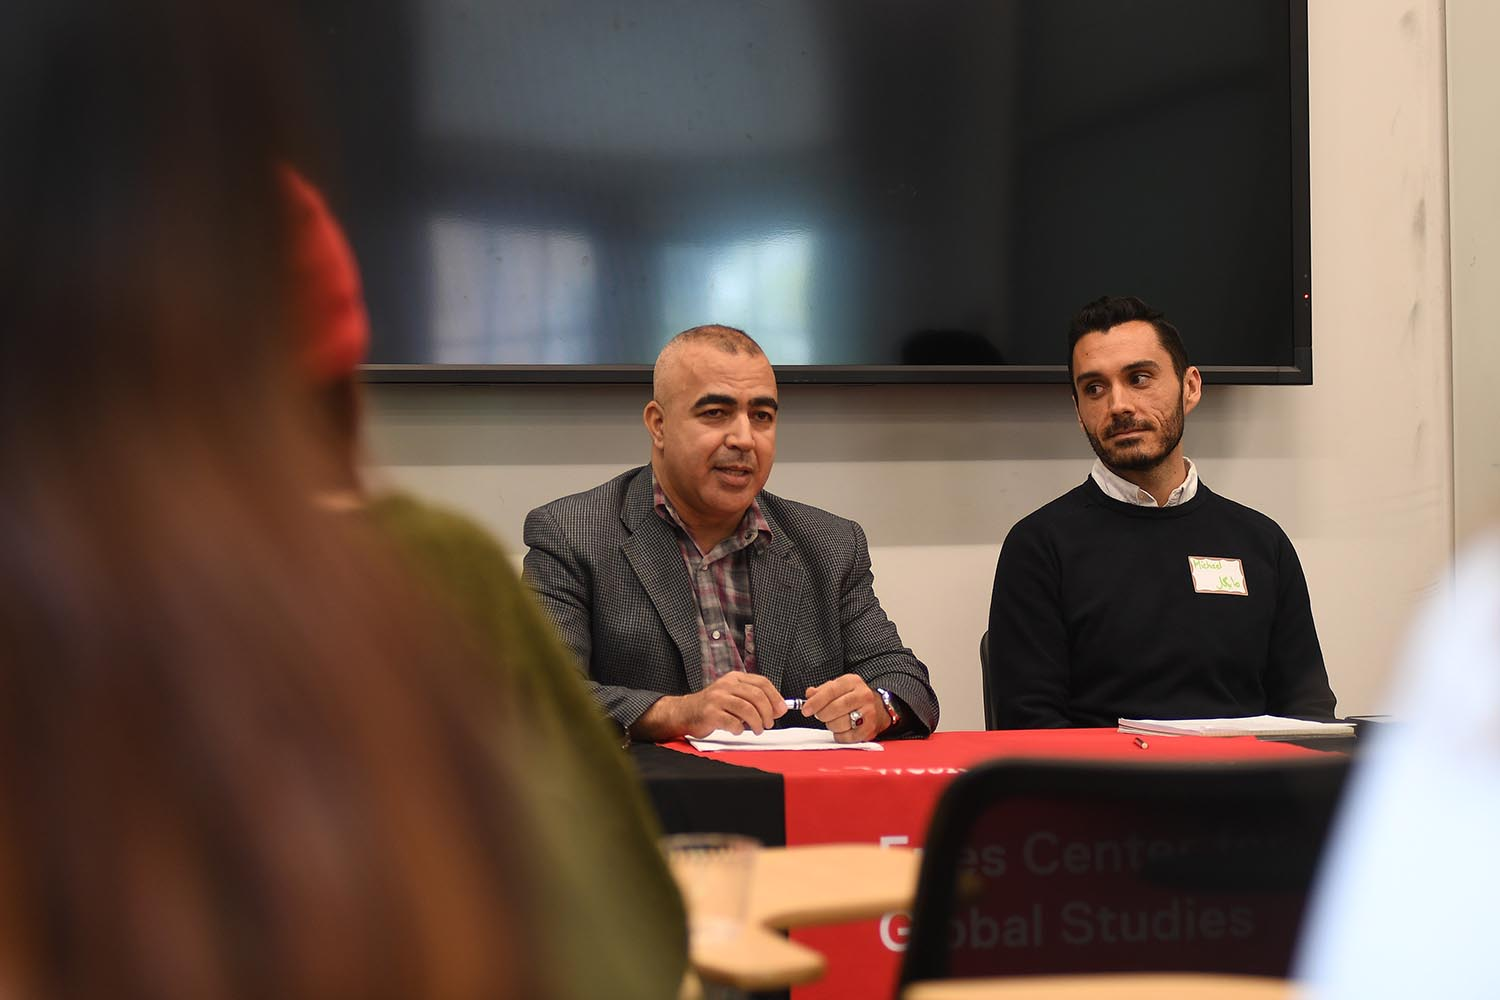 Professor Aissa (Arabic) and Michael Acosta (Study Abroad Advisor)